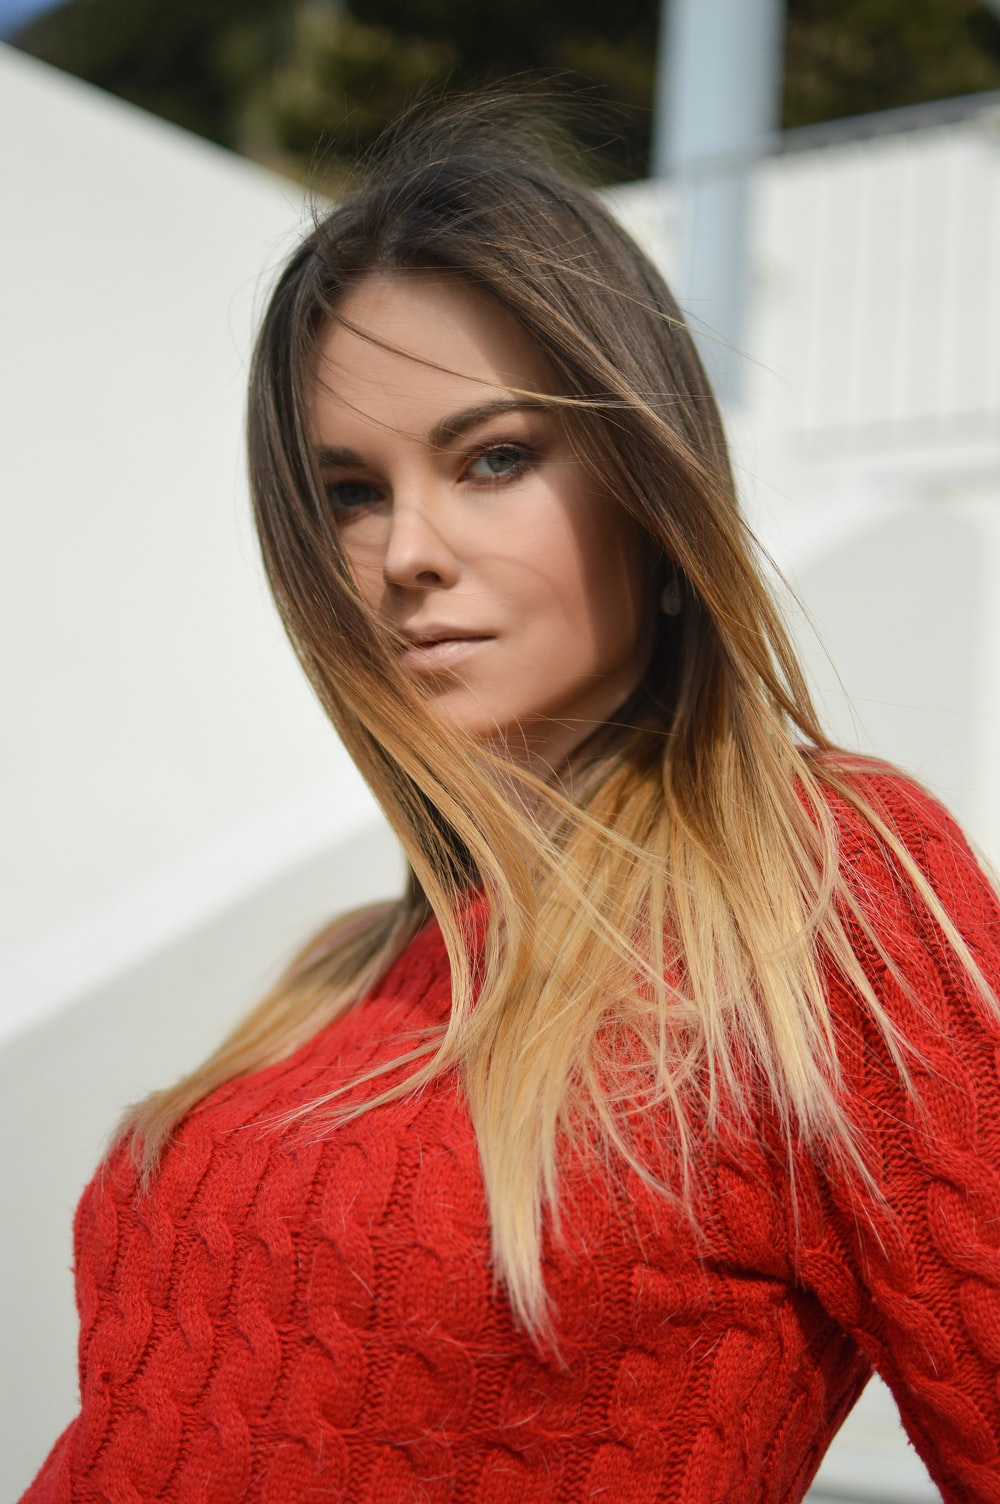 woman wearing red knit shirt with her hair being flown by the wind selective focus photo